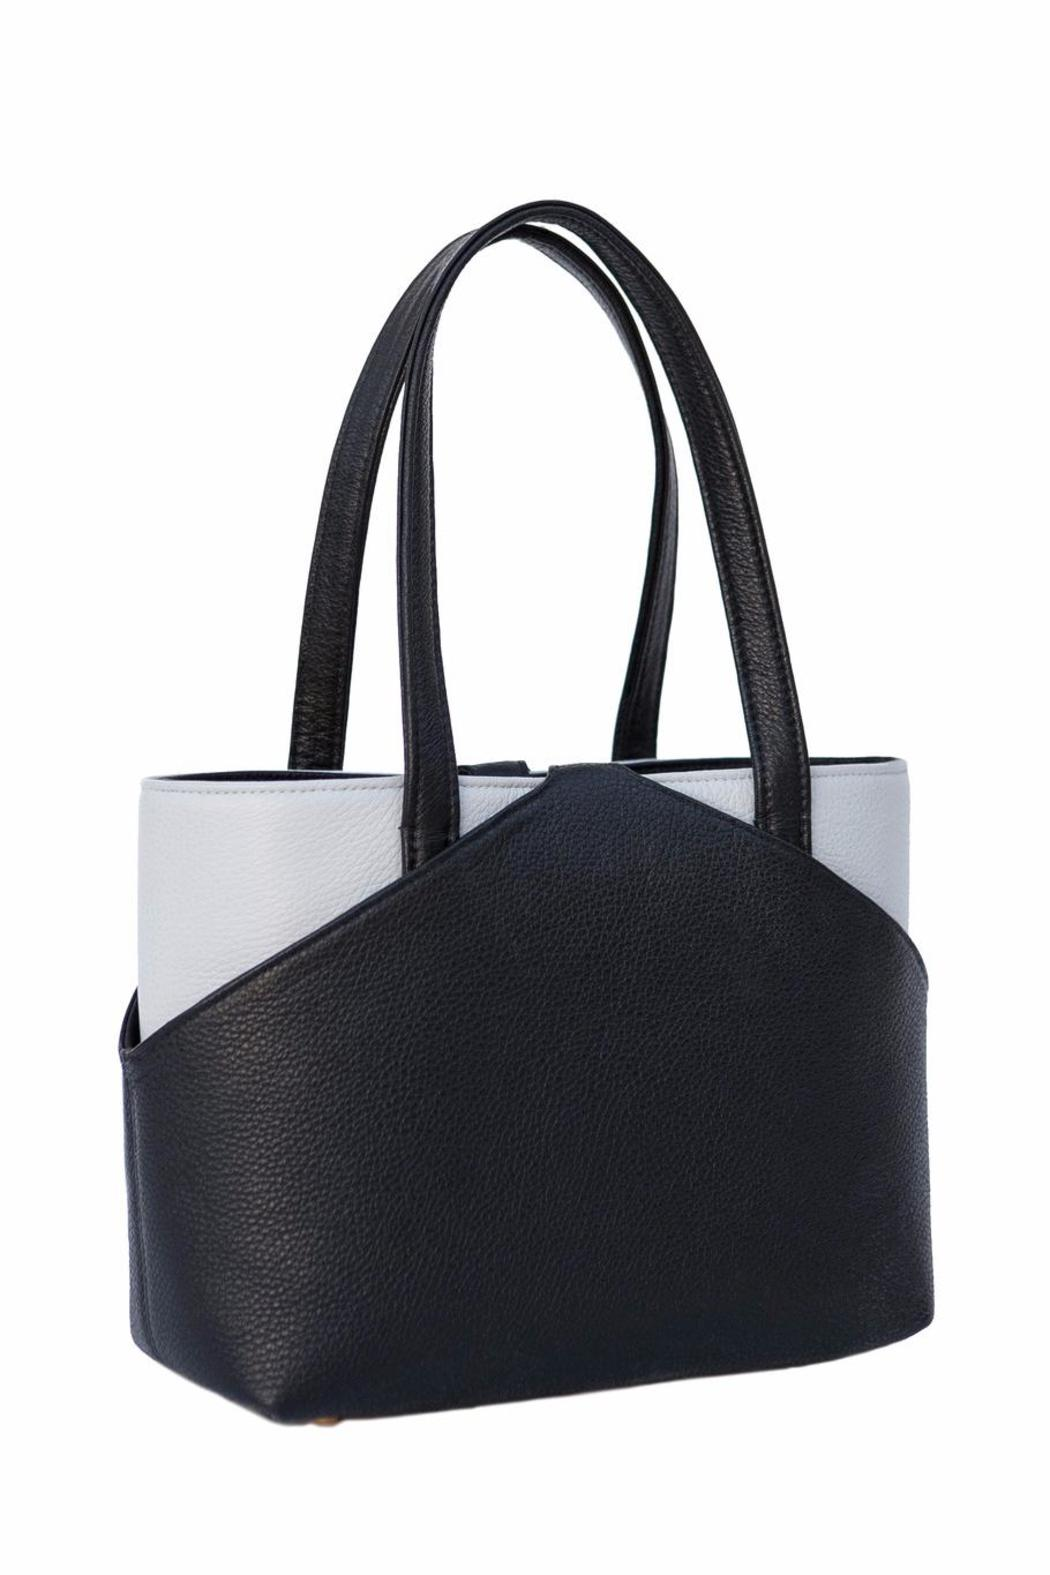 Kyla Joy Audrey Petite Carryall Bag From Omaha By Material